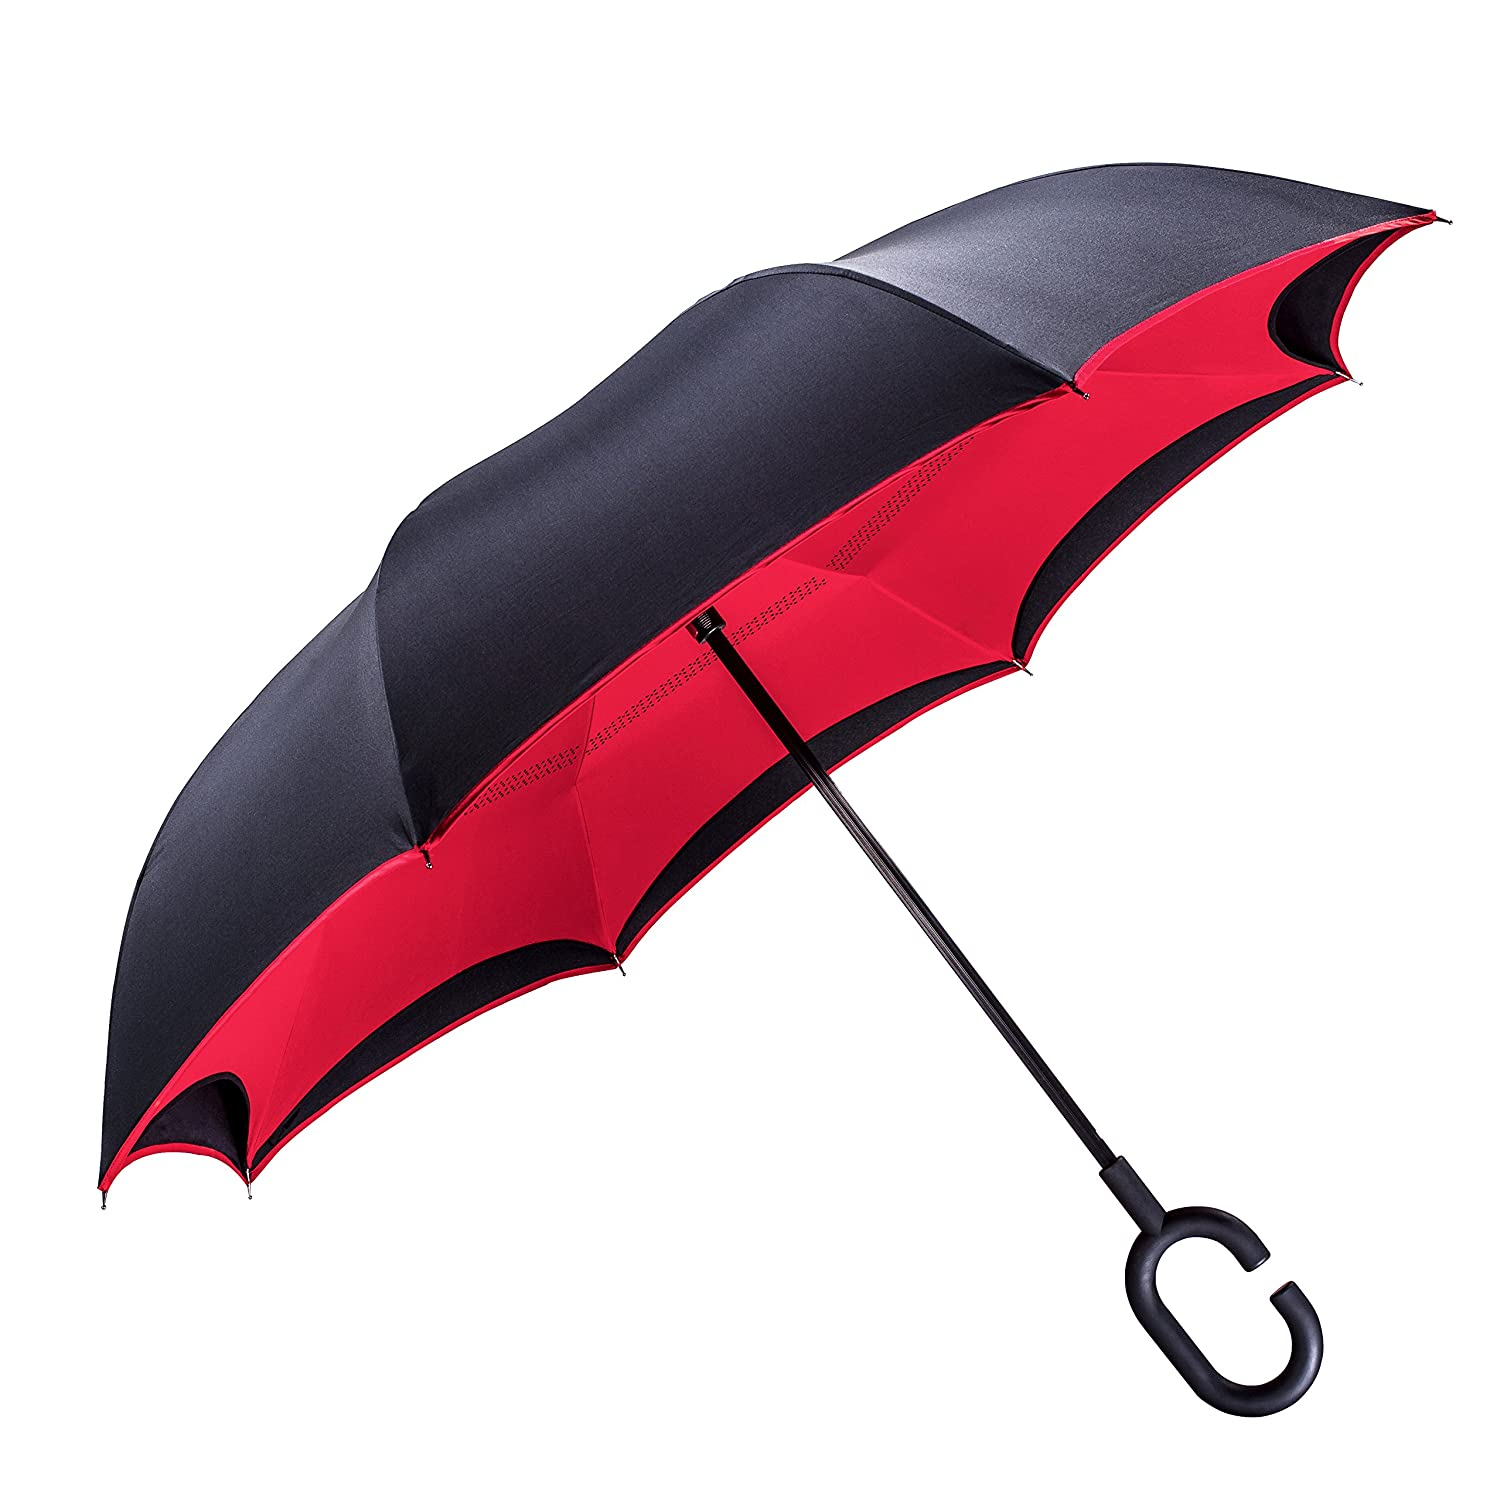 Inverted Umbrella by Tooge, Cars Reverse Umbrella for Wind and Rain Protection-Double Layer and Self-Standing, with C-Shaped Handle and Umbrella Cap (Black) TG-FXS-001